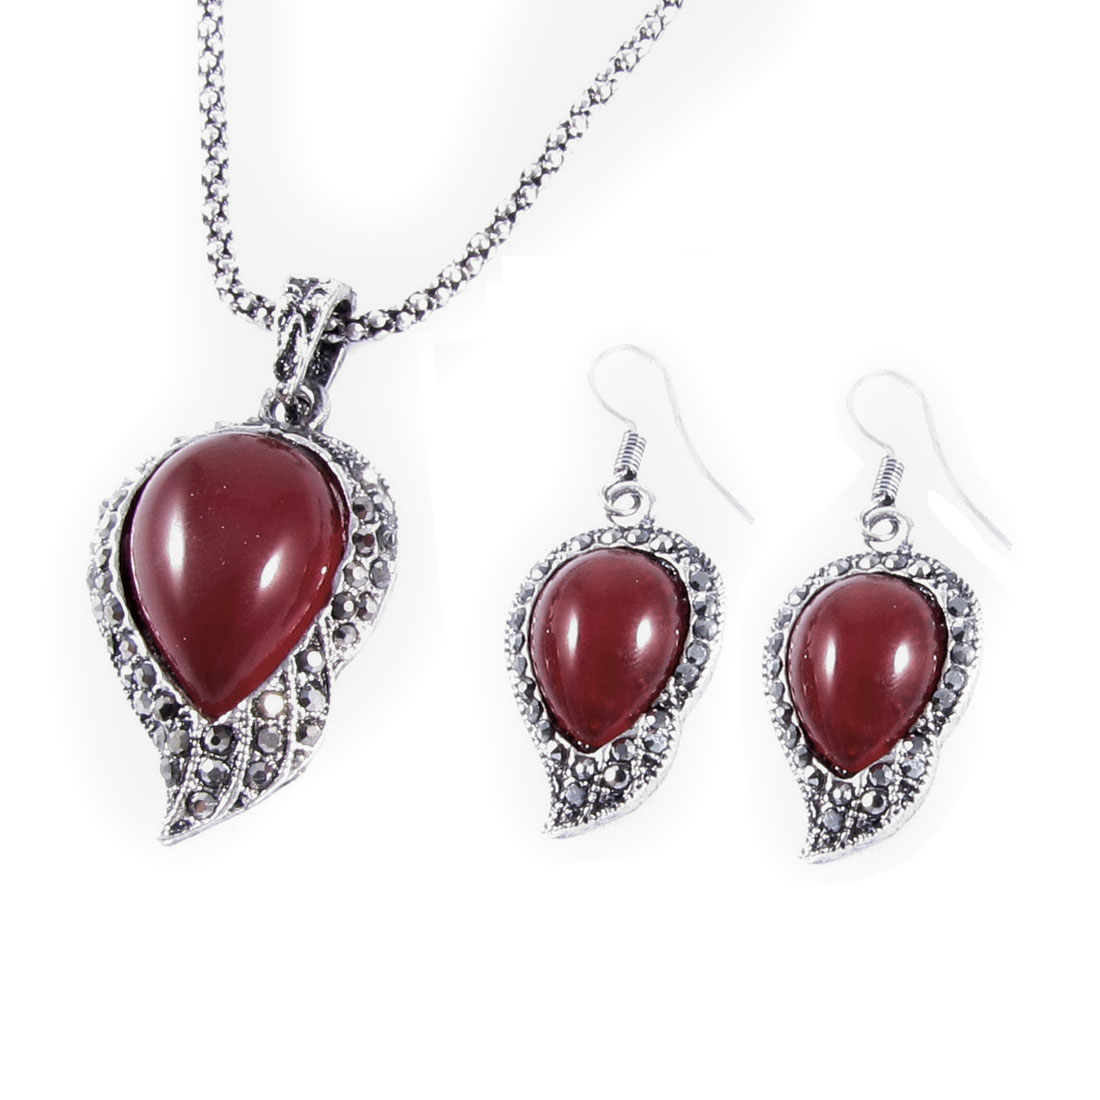 Rhinestone Accent Leaf Shape Pendant Silver Tone Red Chain Necklace Earring Set